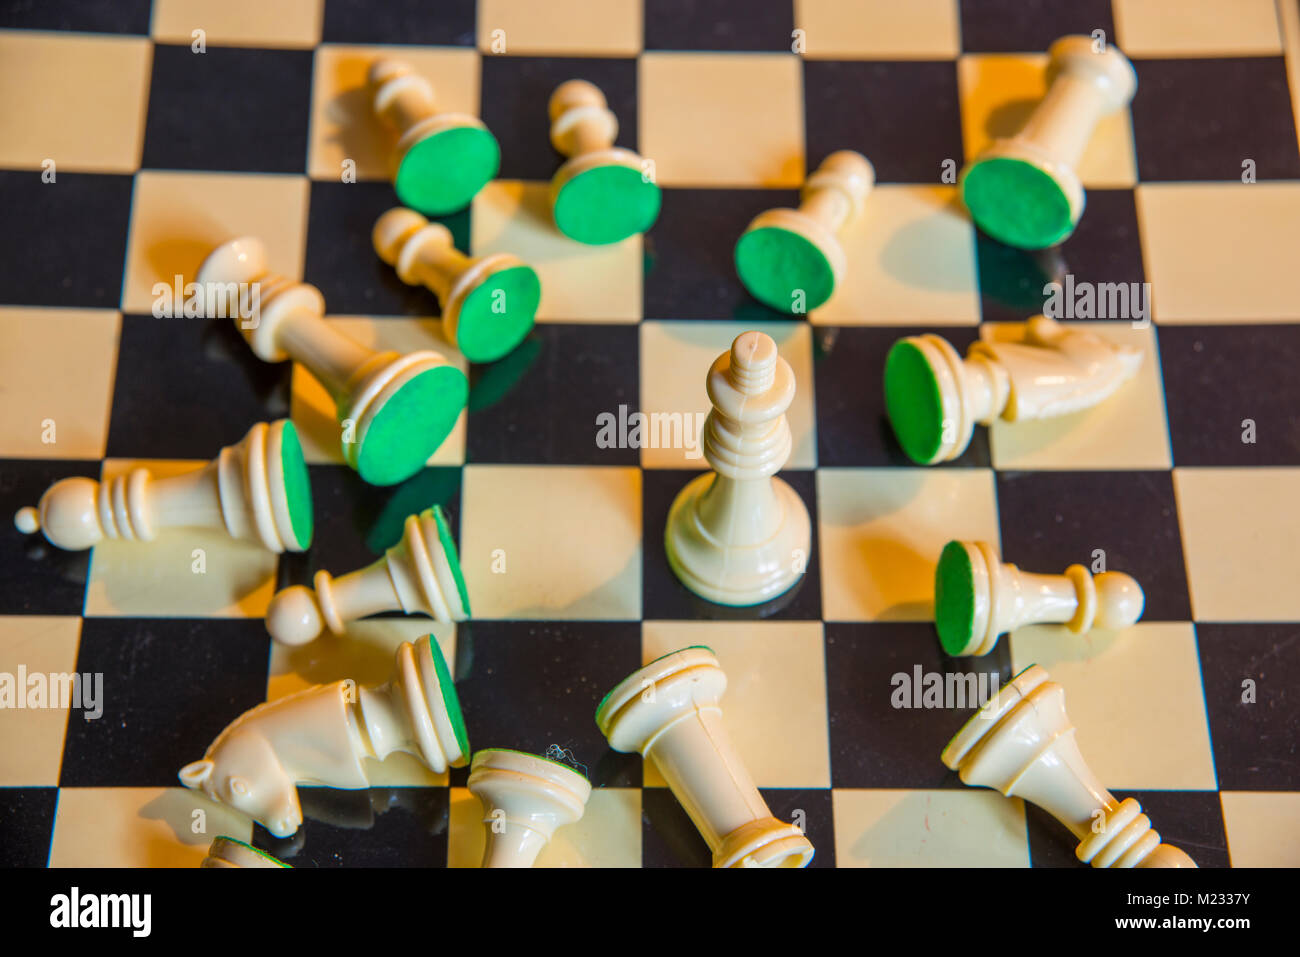 Chess: King in the middle of fallen pieces on chess board. - Stock Image